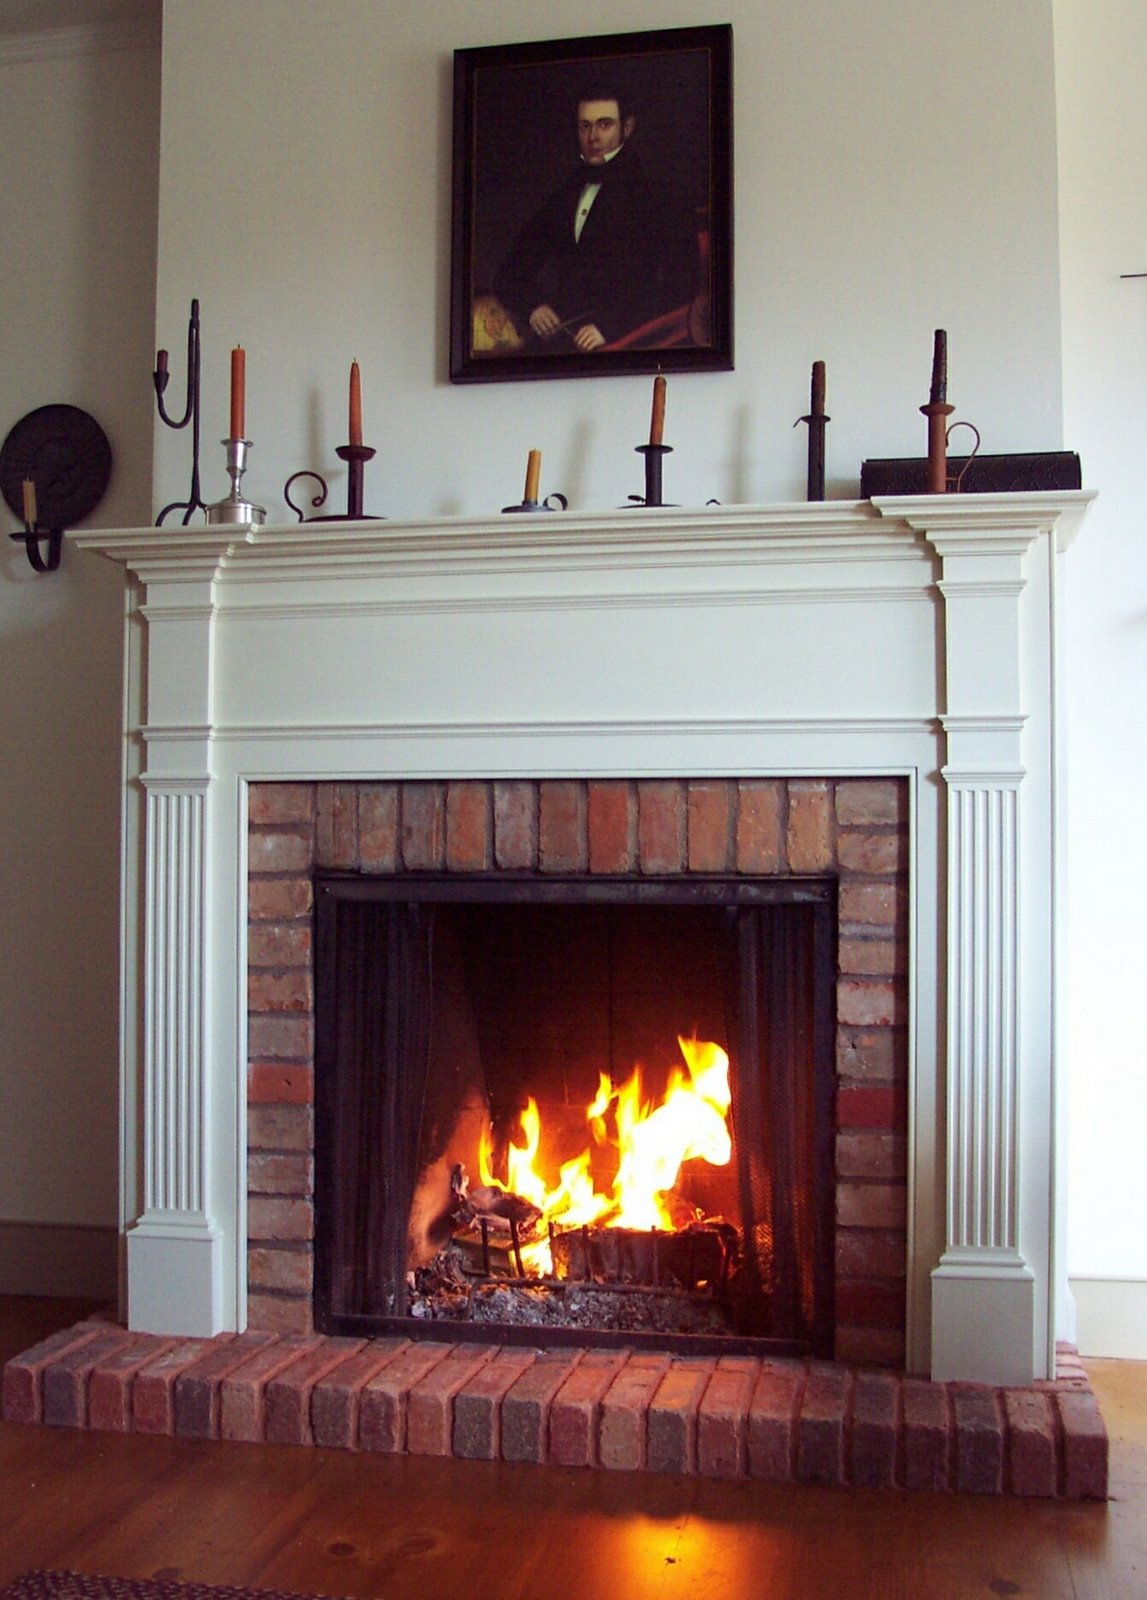 Fireplace mantel fine homebuilding for New construction wood burning fireplace